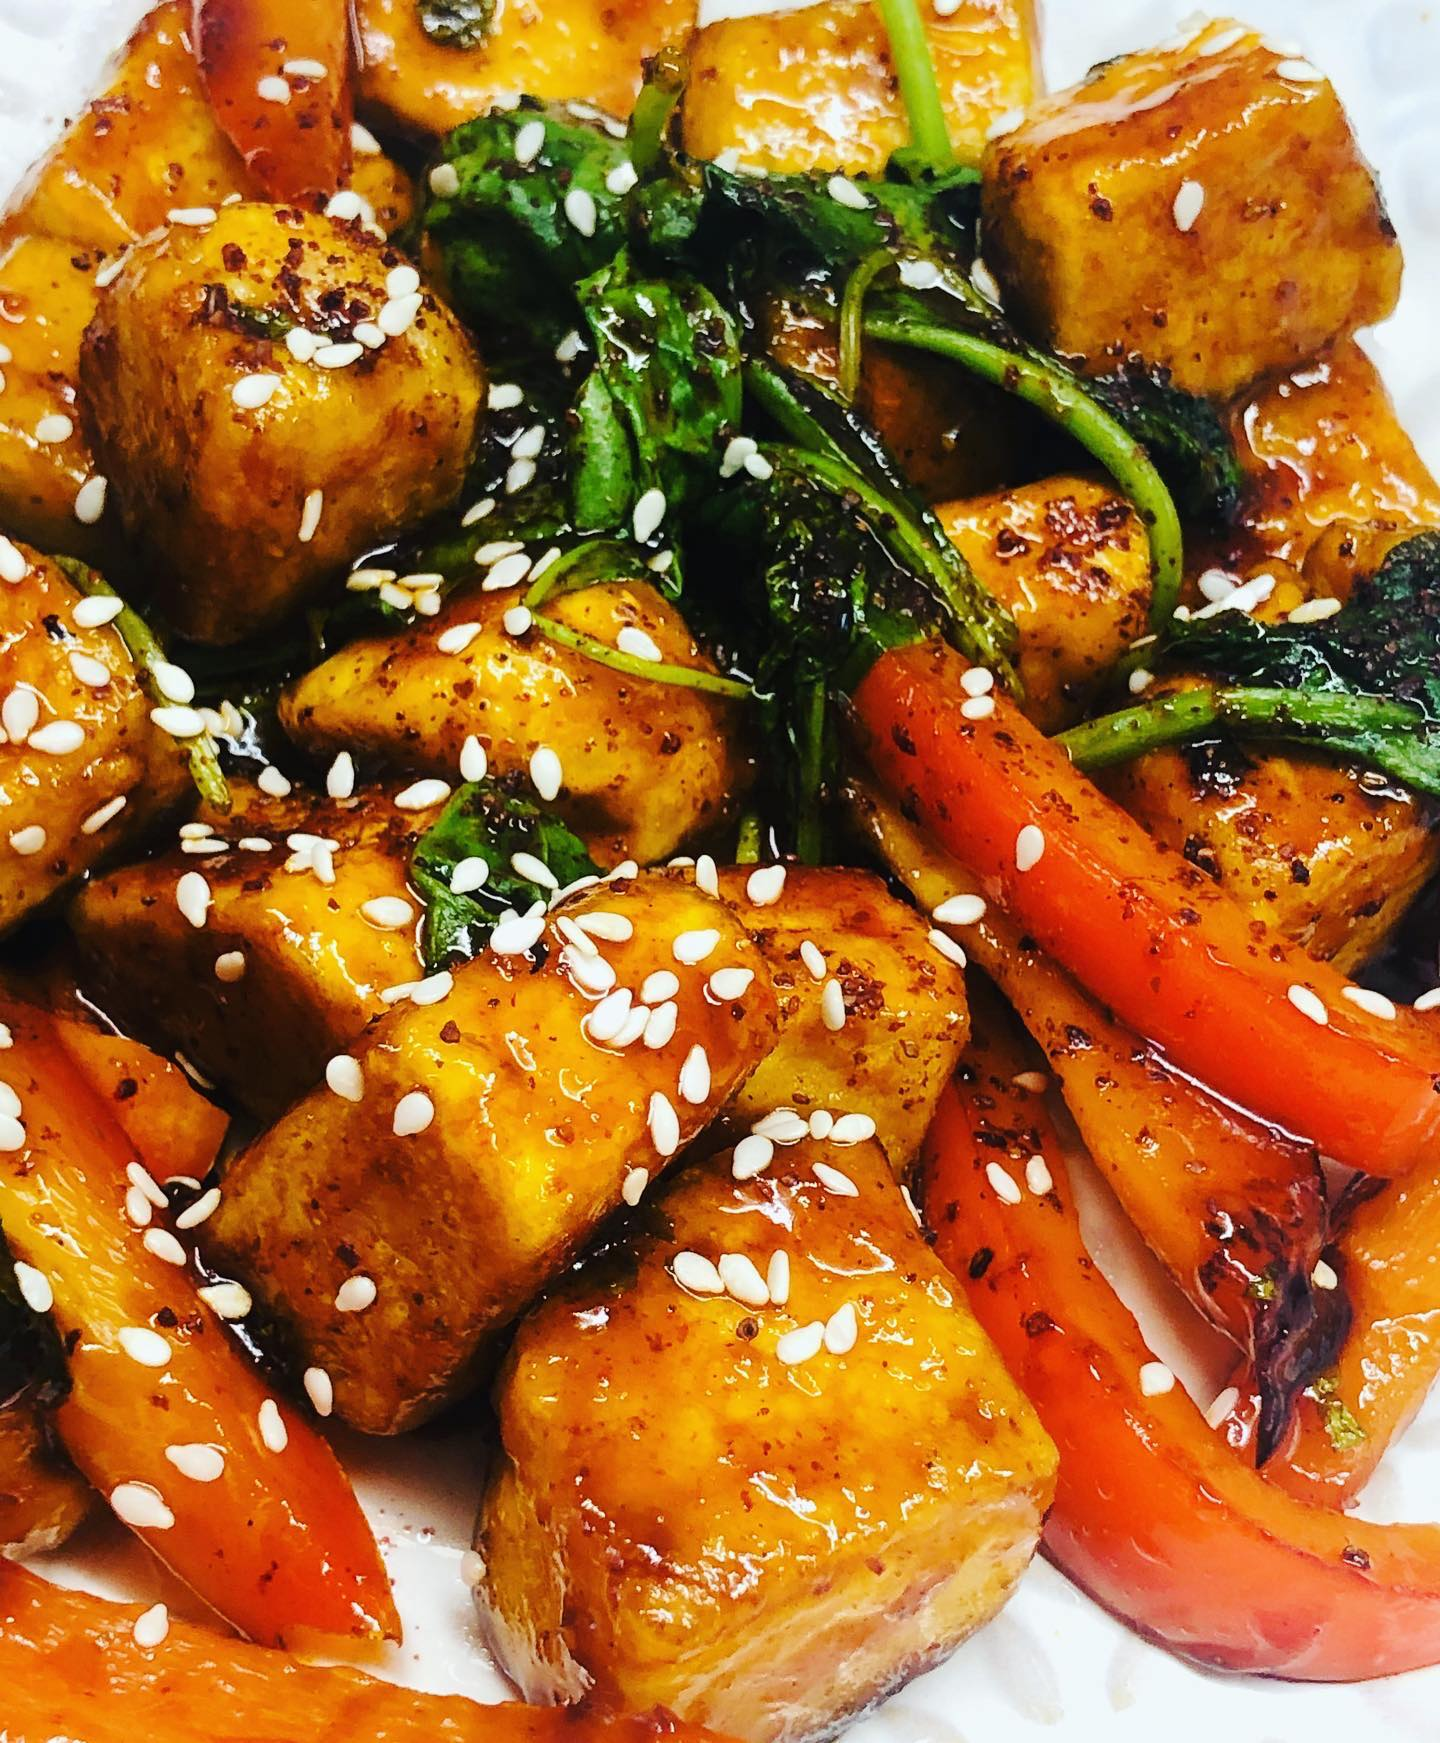 Sticky Pomegranate Glazed Tofu Stir-Fry